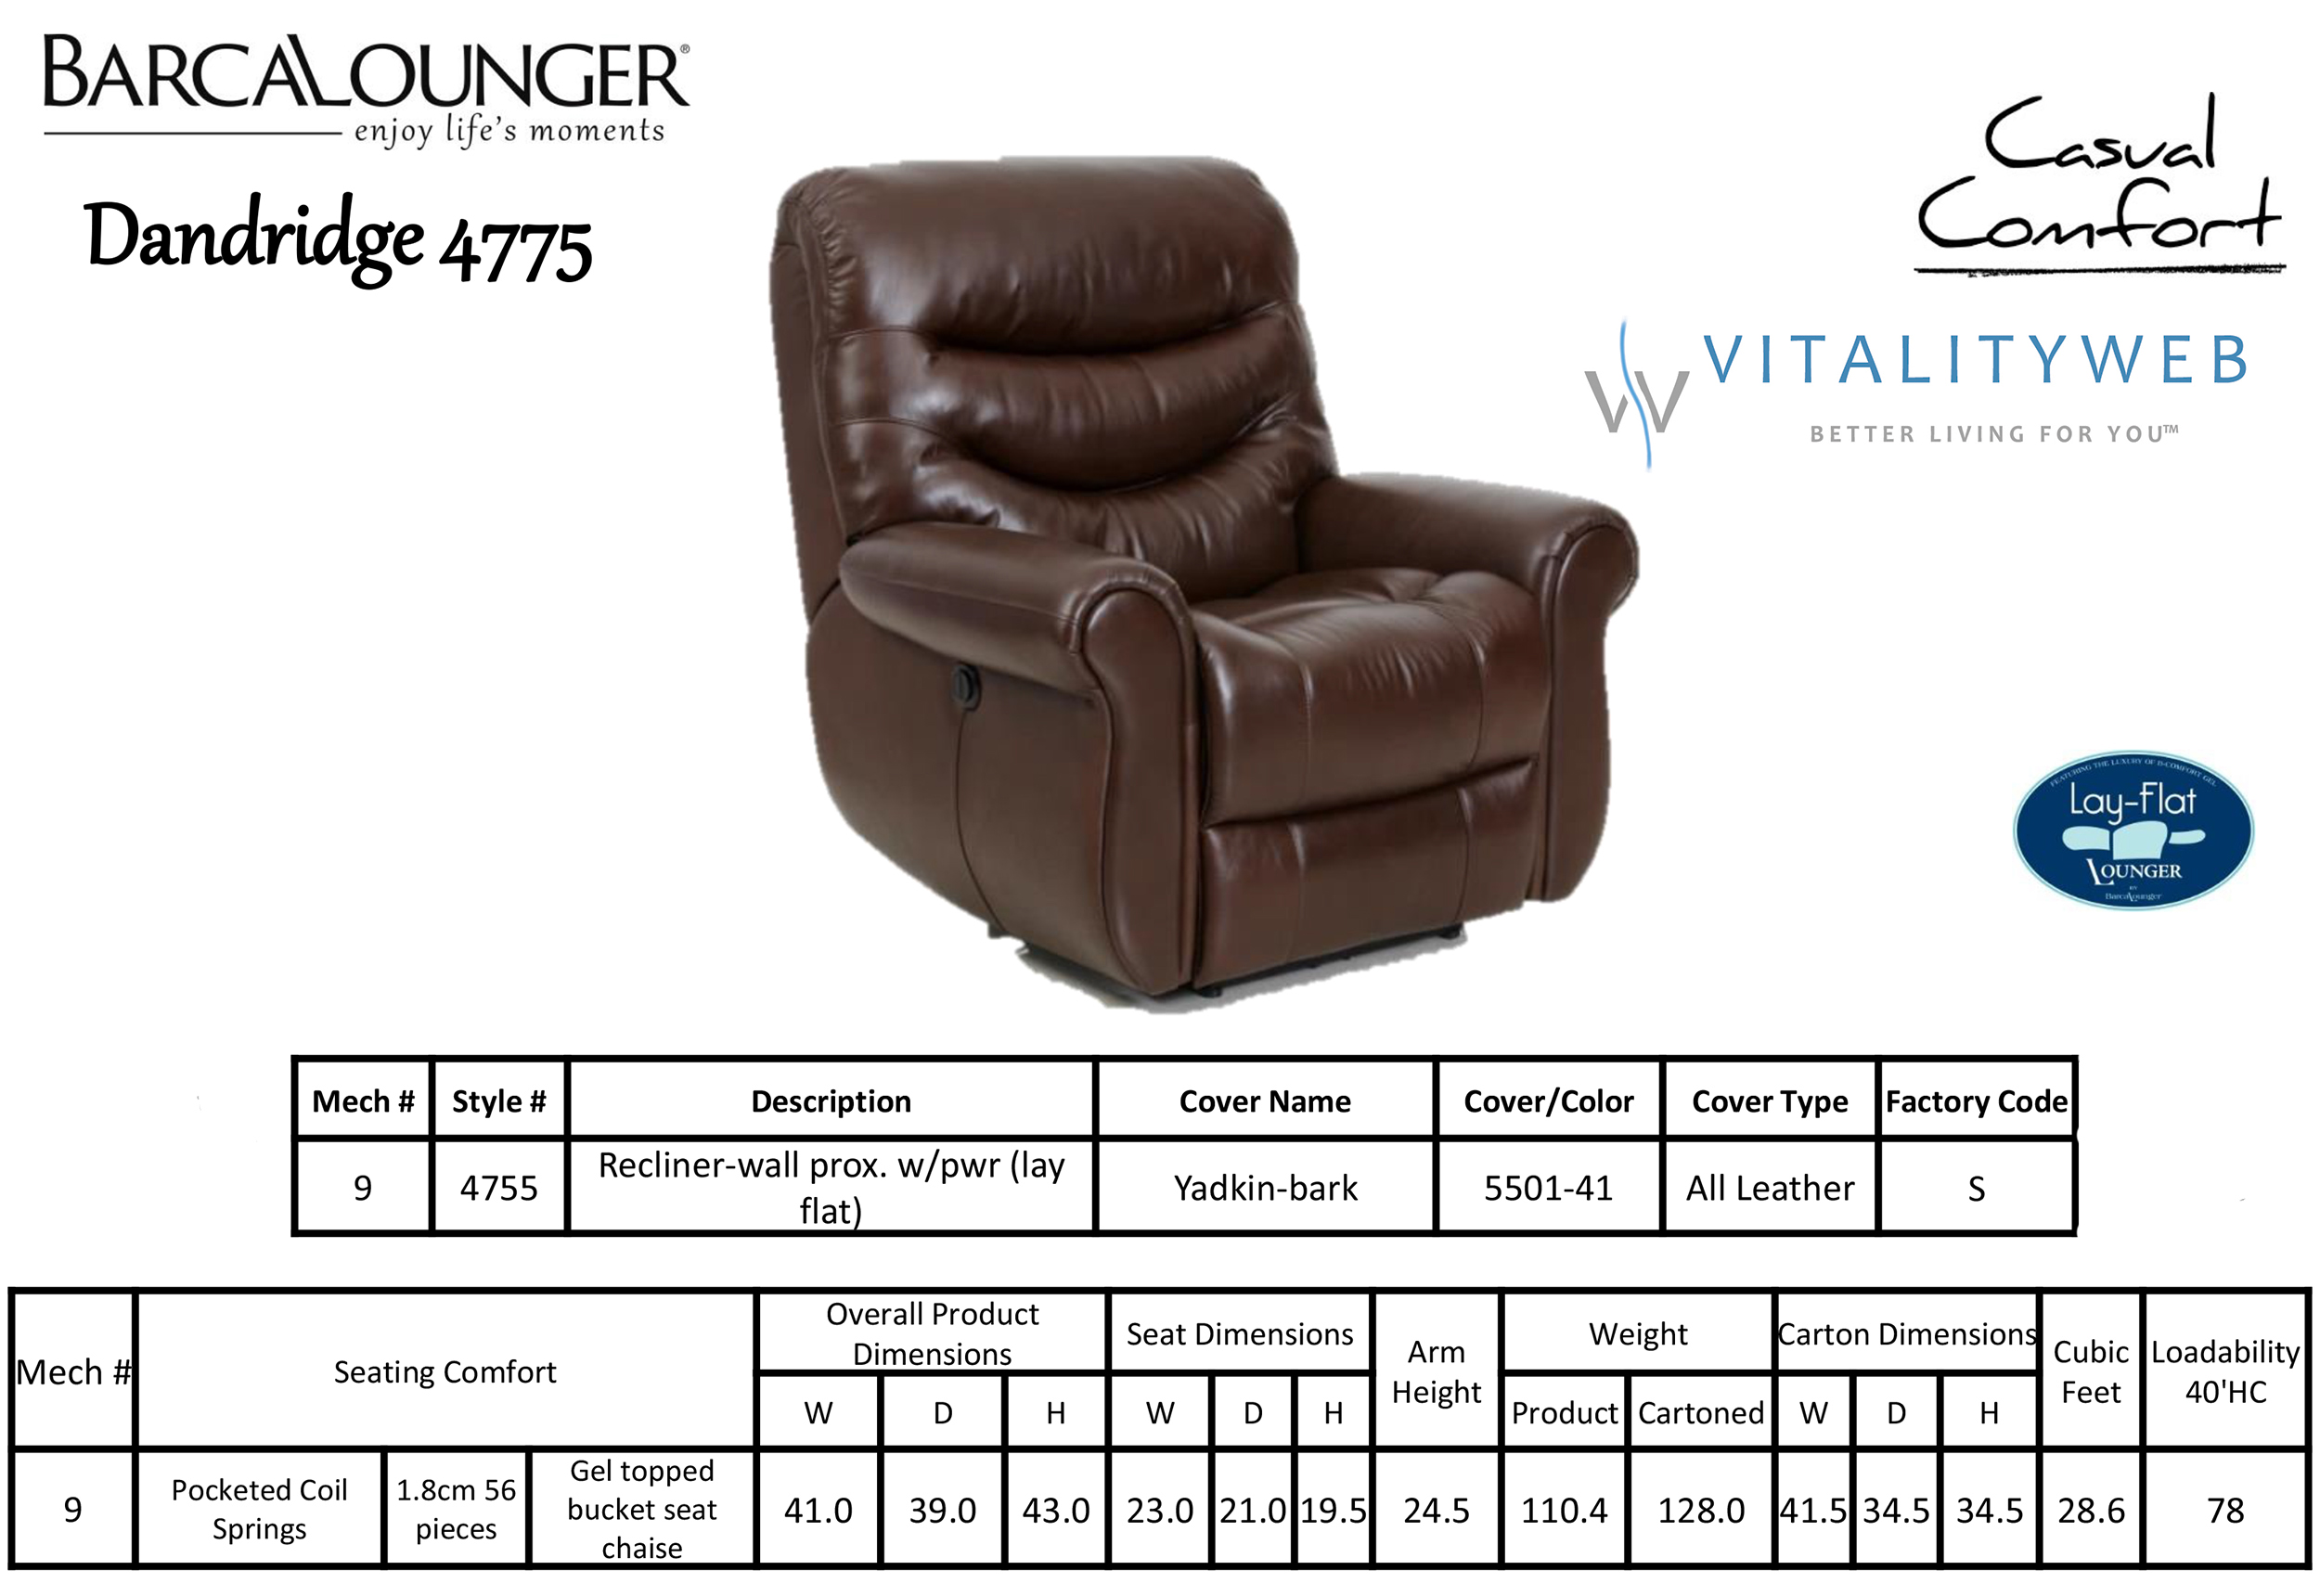 Barcalounger Dandridge 4775 Leather Recliner Chair Dimensions  sc 1 st  Vitalitywebb.com : recliners that lay flat - islam-shia.org